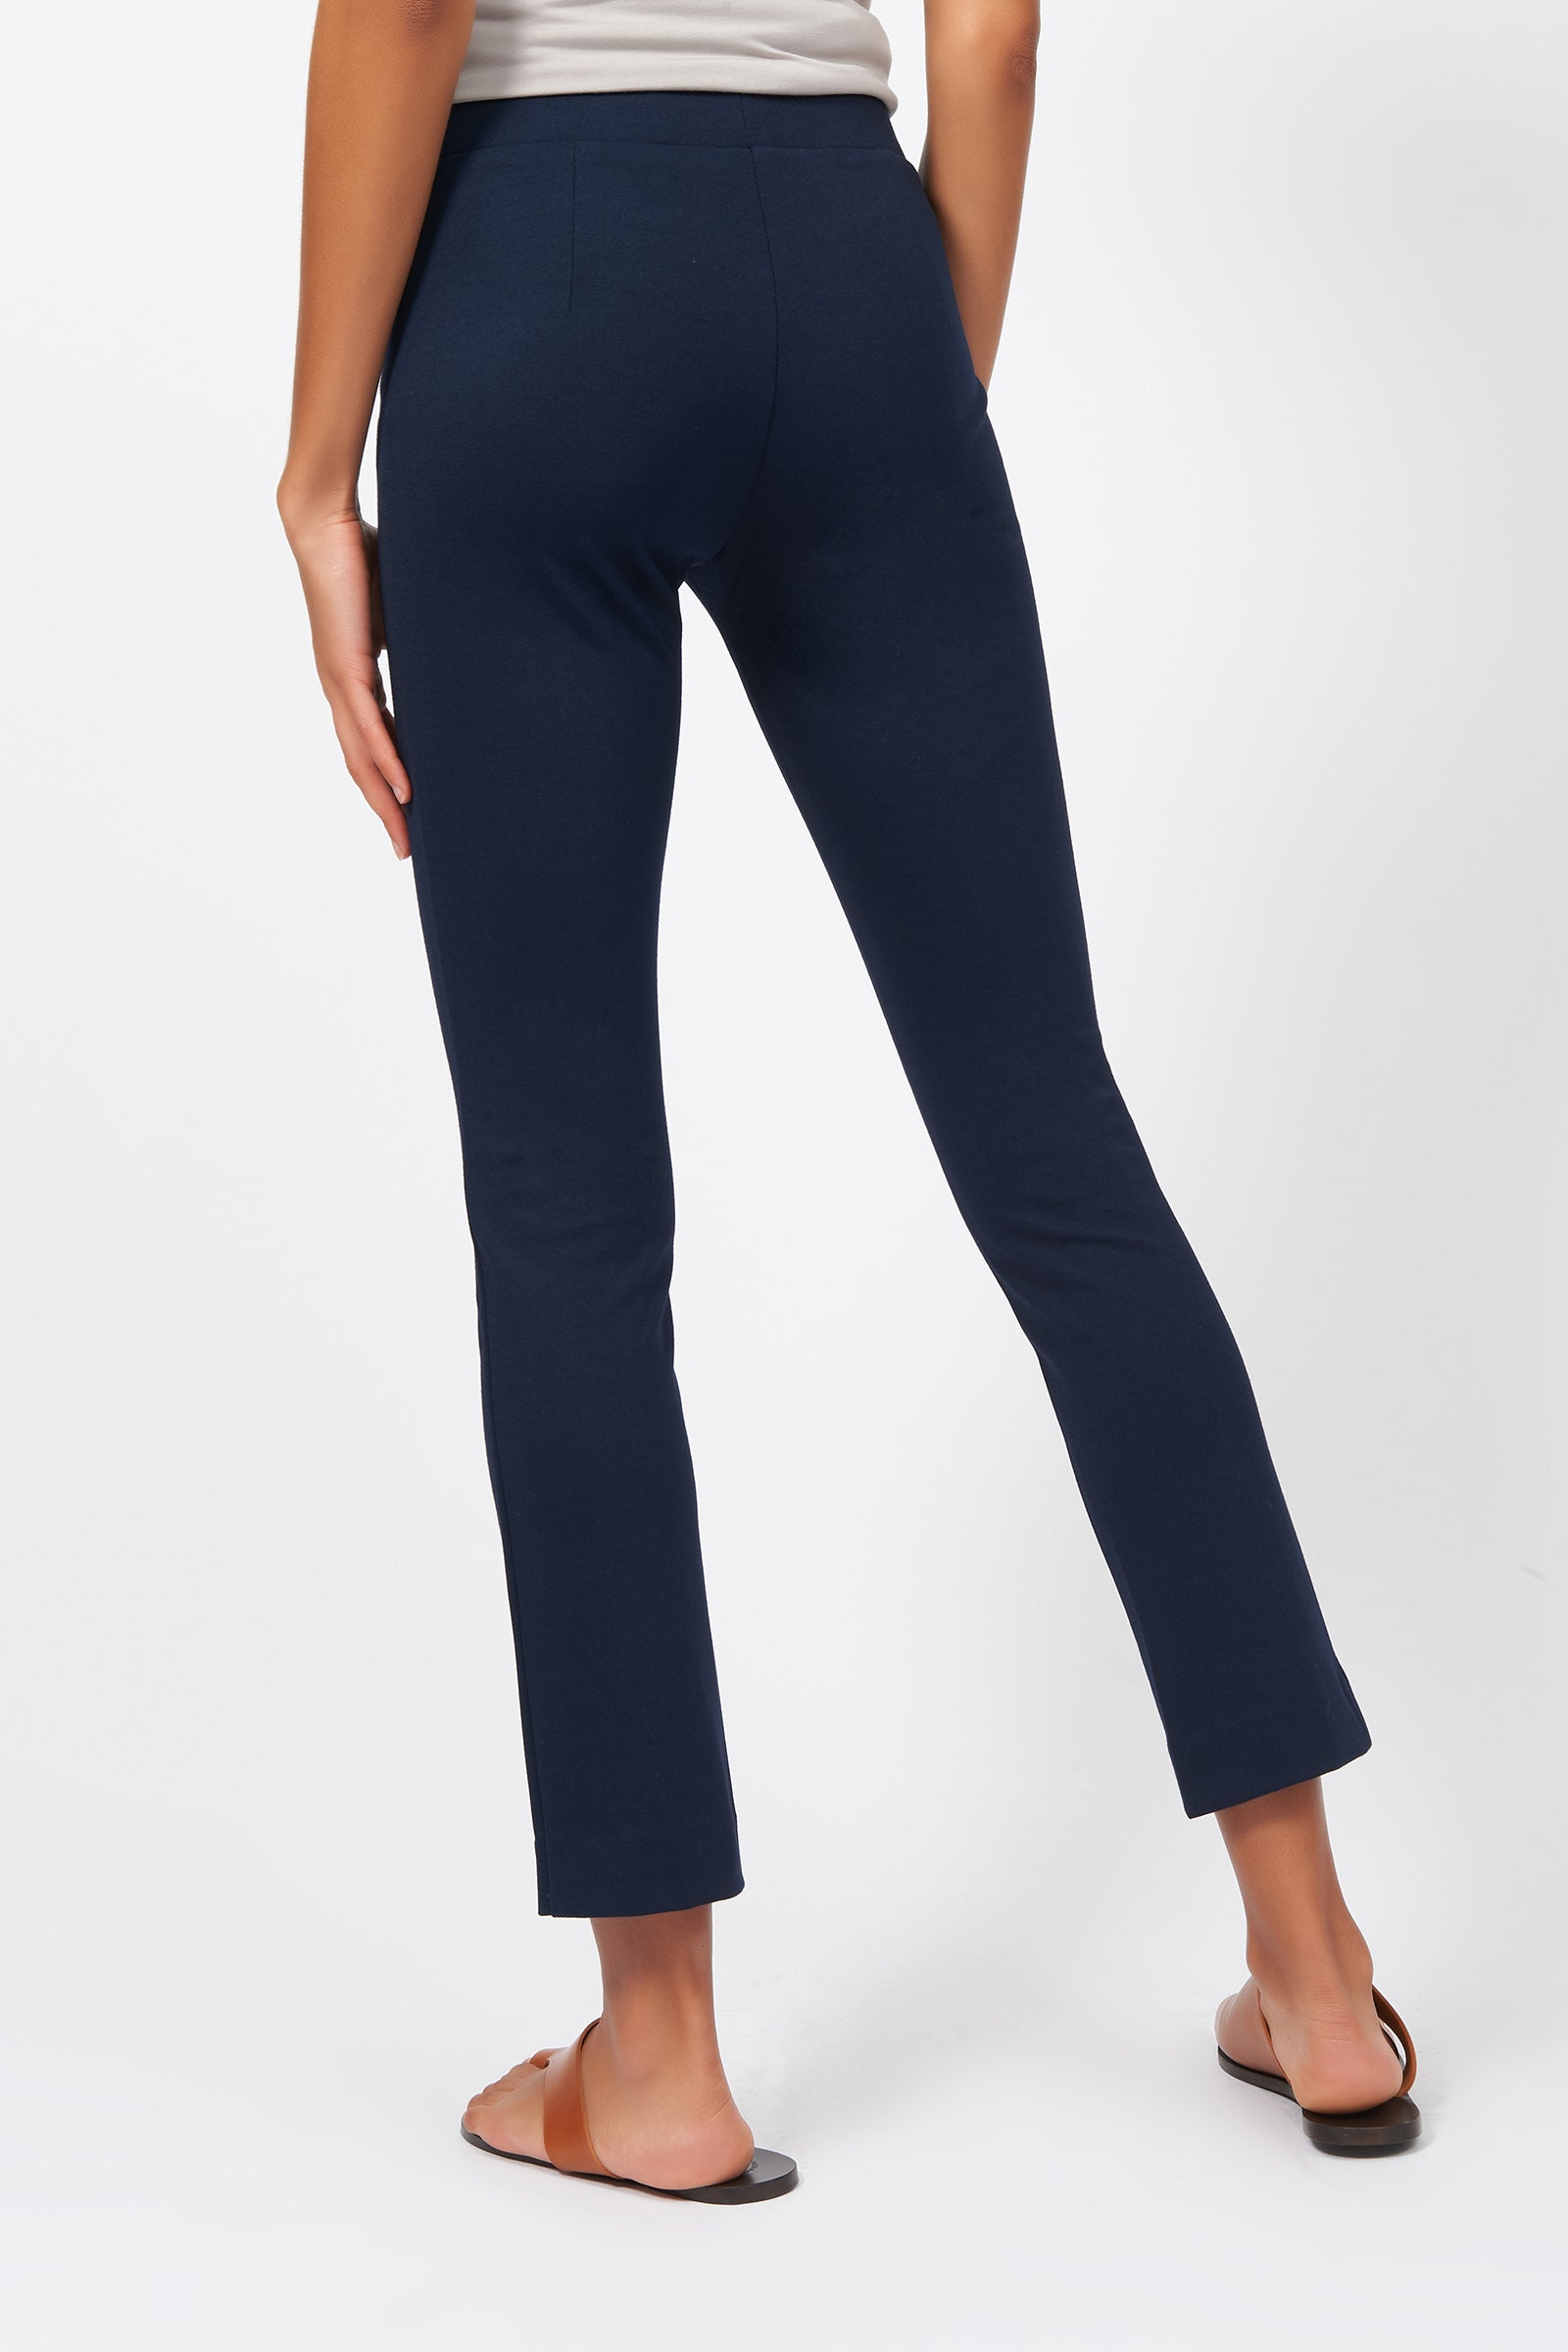 Kal Rieman Pintuck Ponte Ankle Pant in Navy on Model Back View